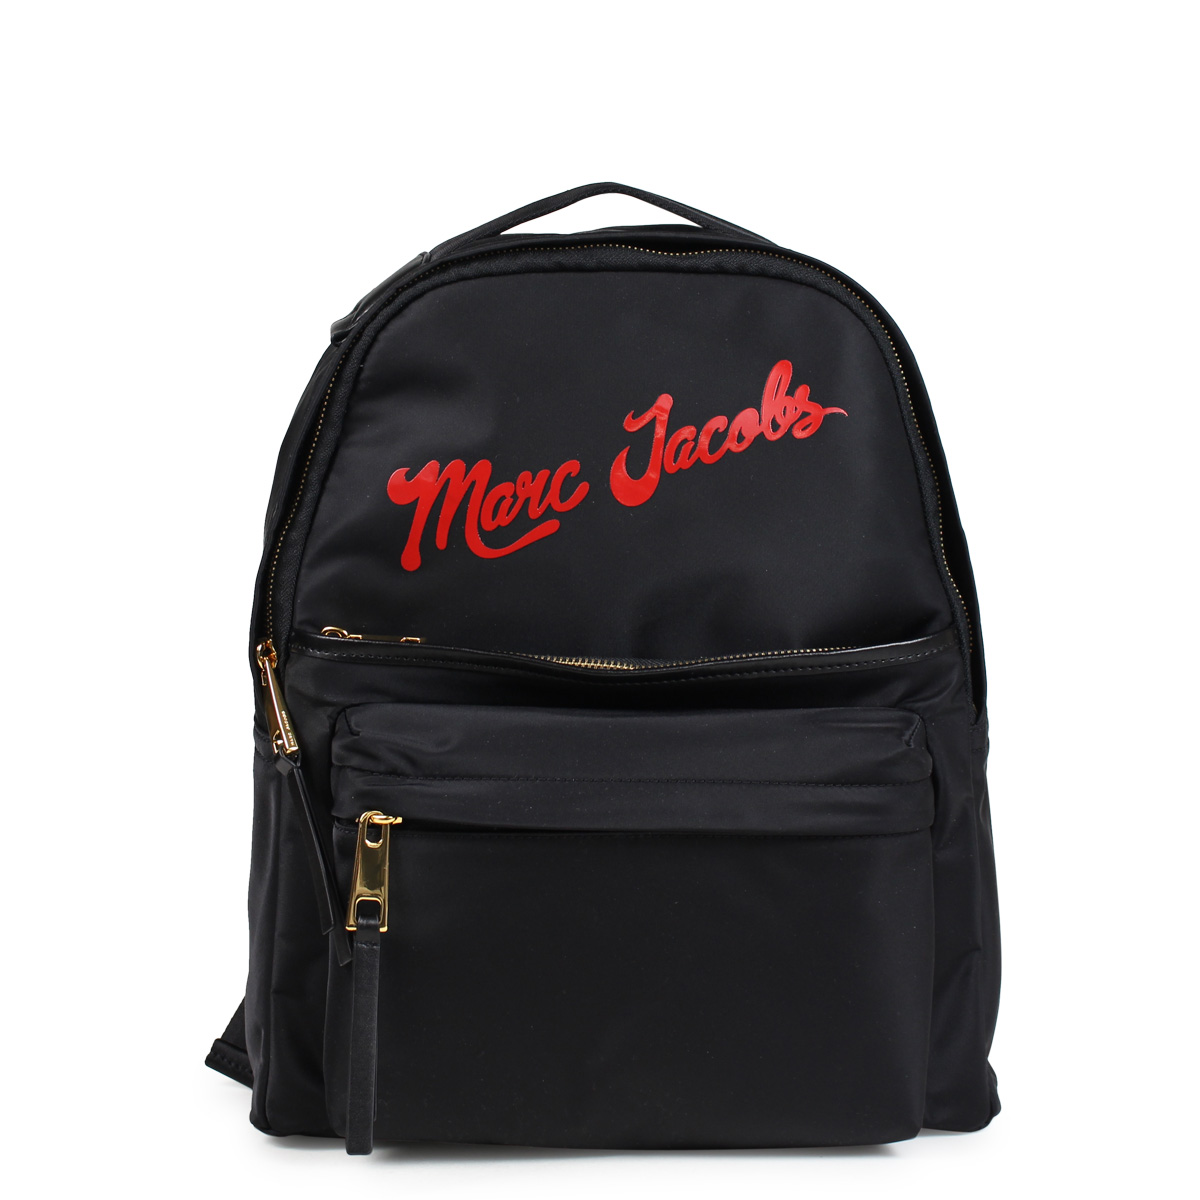 MARC JACOBS NYLON LARGE BACKPACK マークジェイコブス リュック バッグ バックパック レディース ブラック M0014161